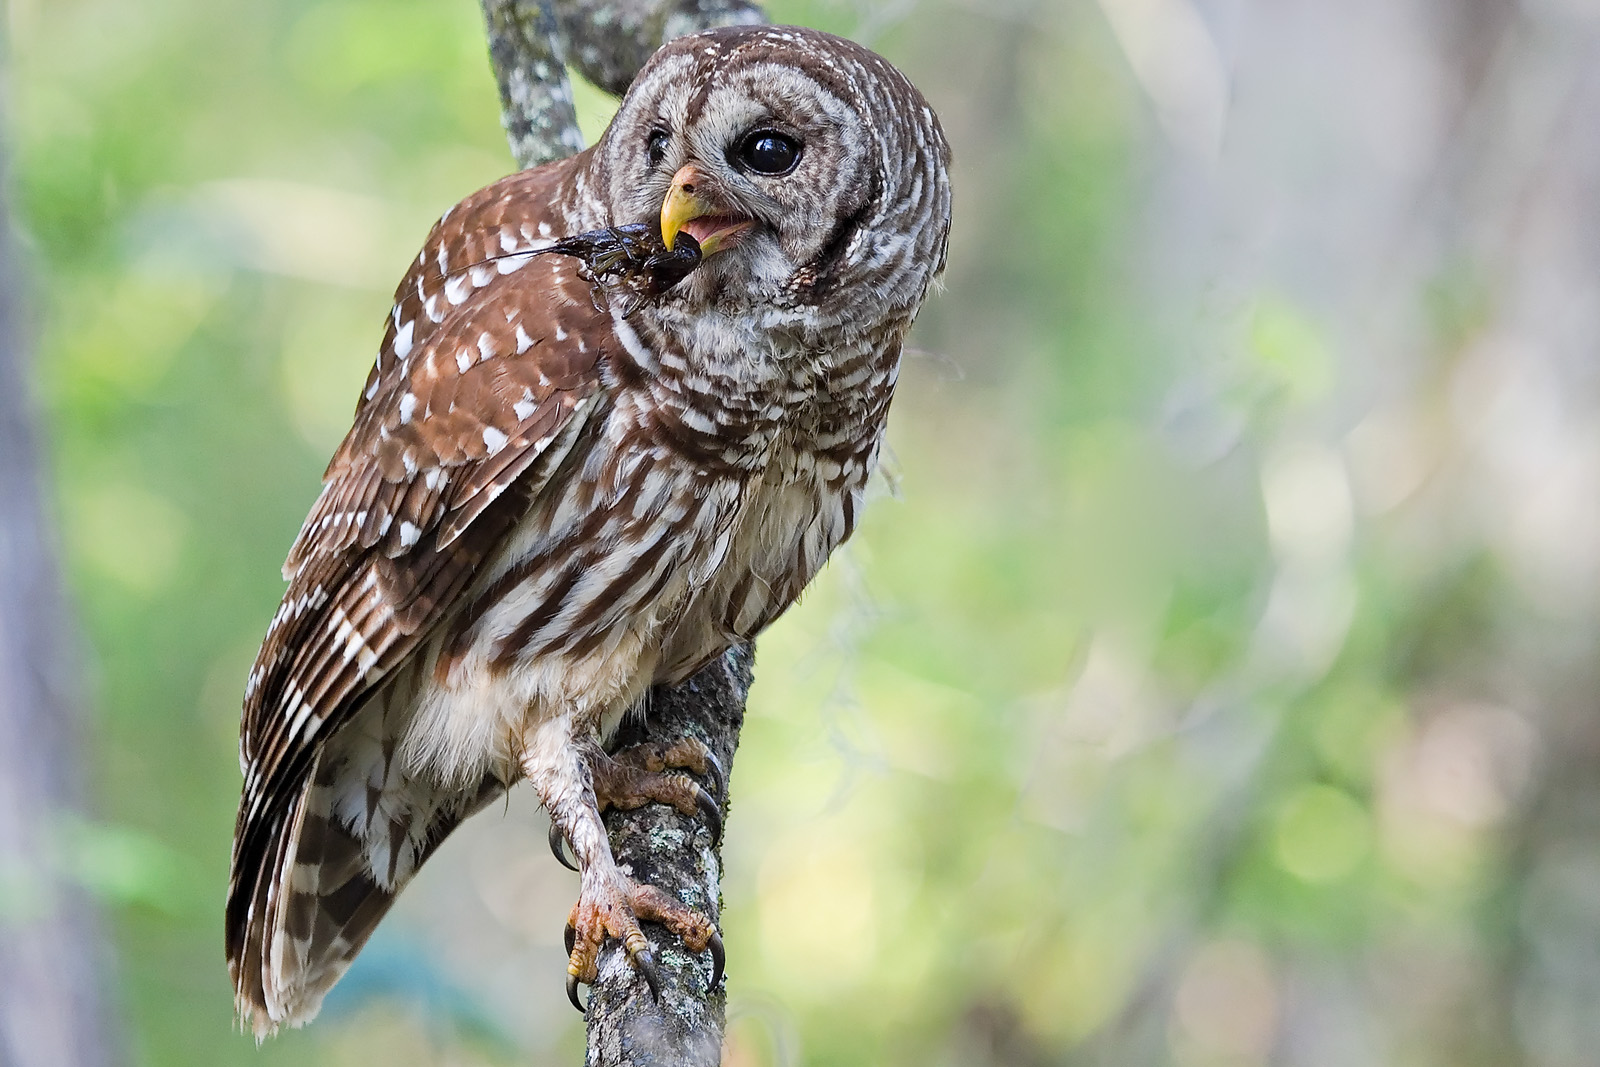 Barred Owl with Crayfish